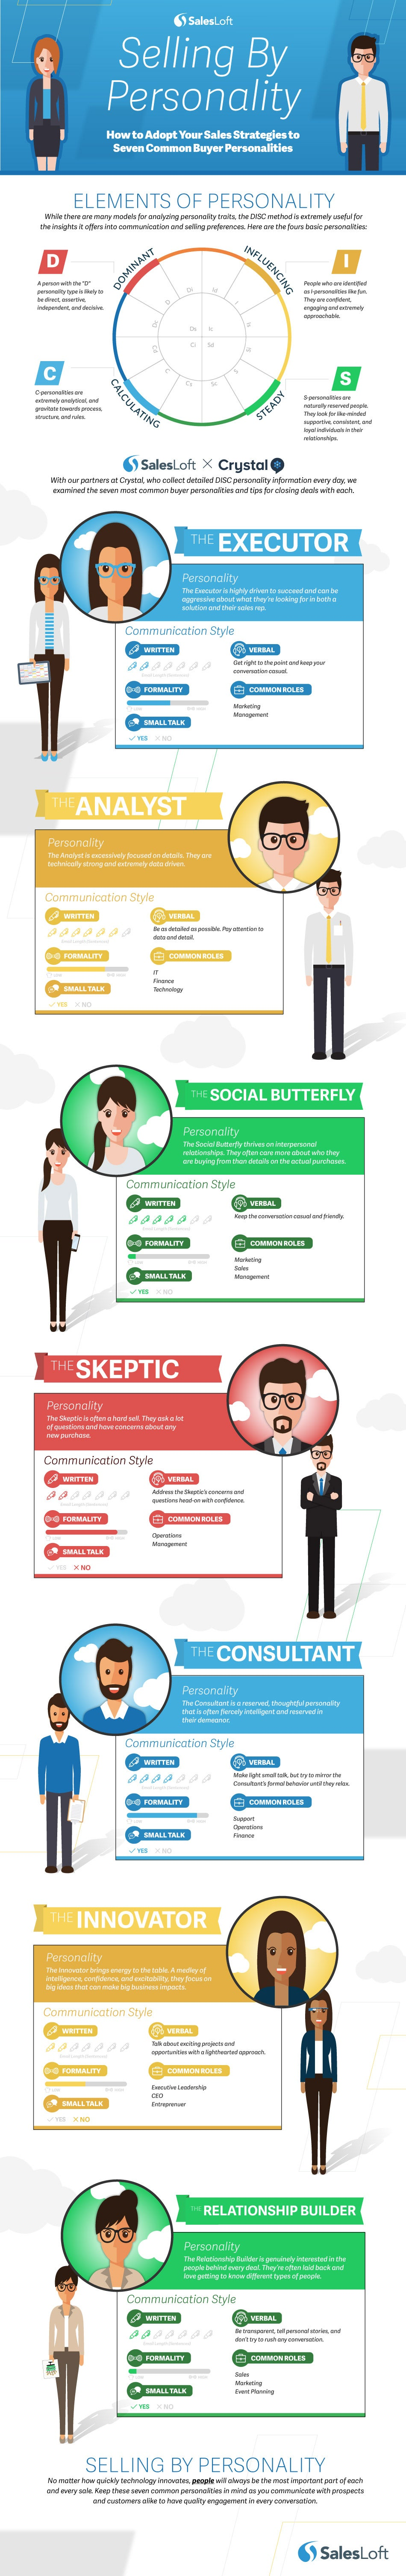 SellingByPersonality_Infographic